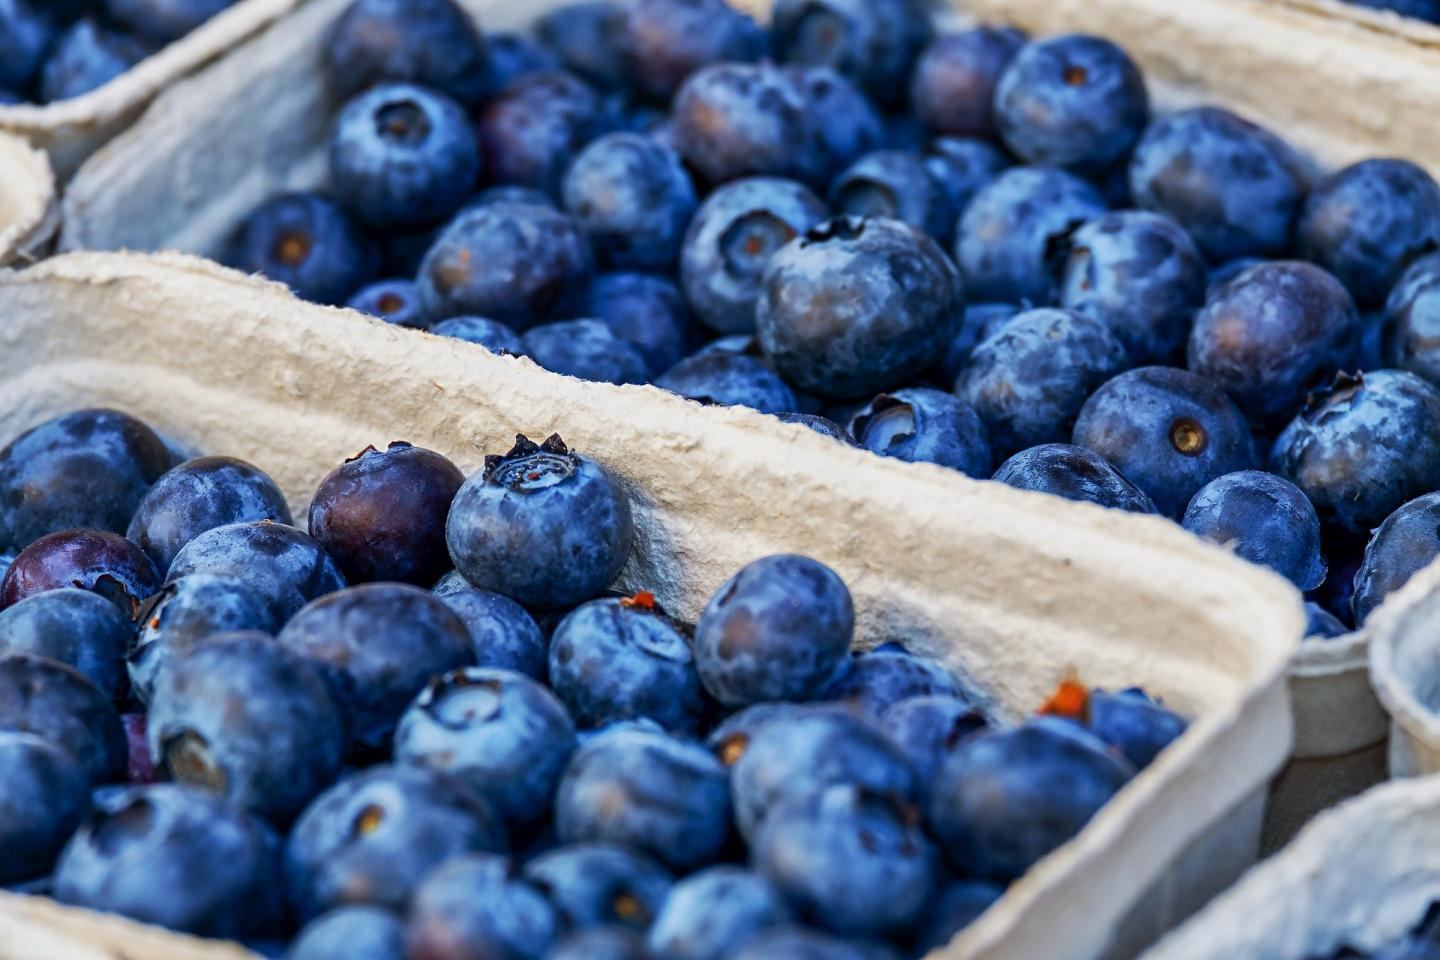 Blueberry Compound May Provide New Inflammatory Bowel Disease Therapy